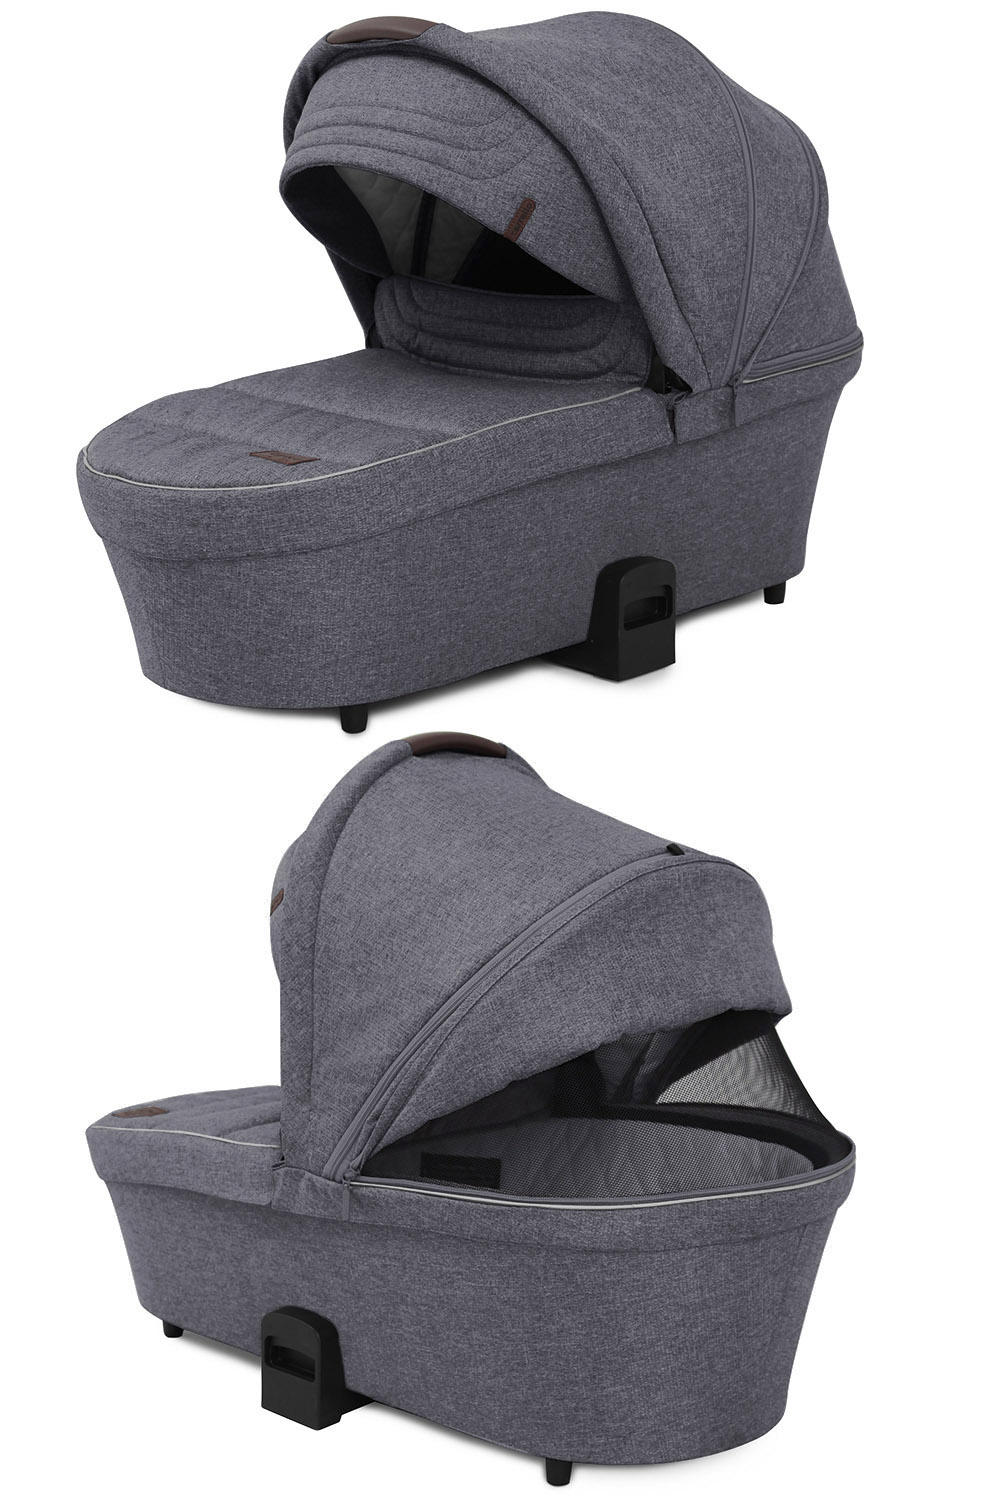 Universal Stroller Epica 3 in 1